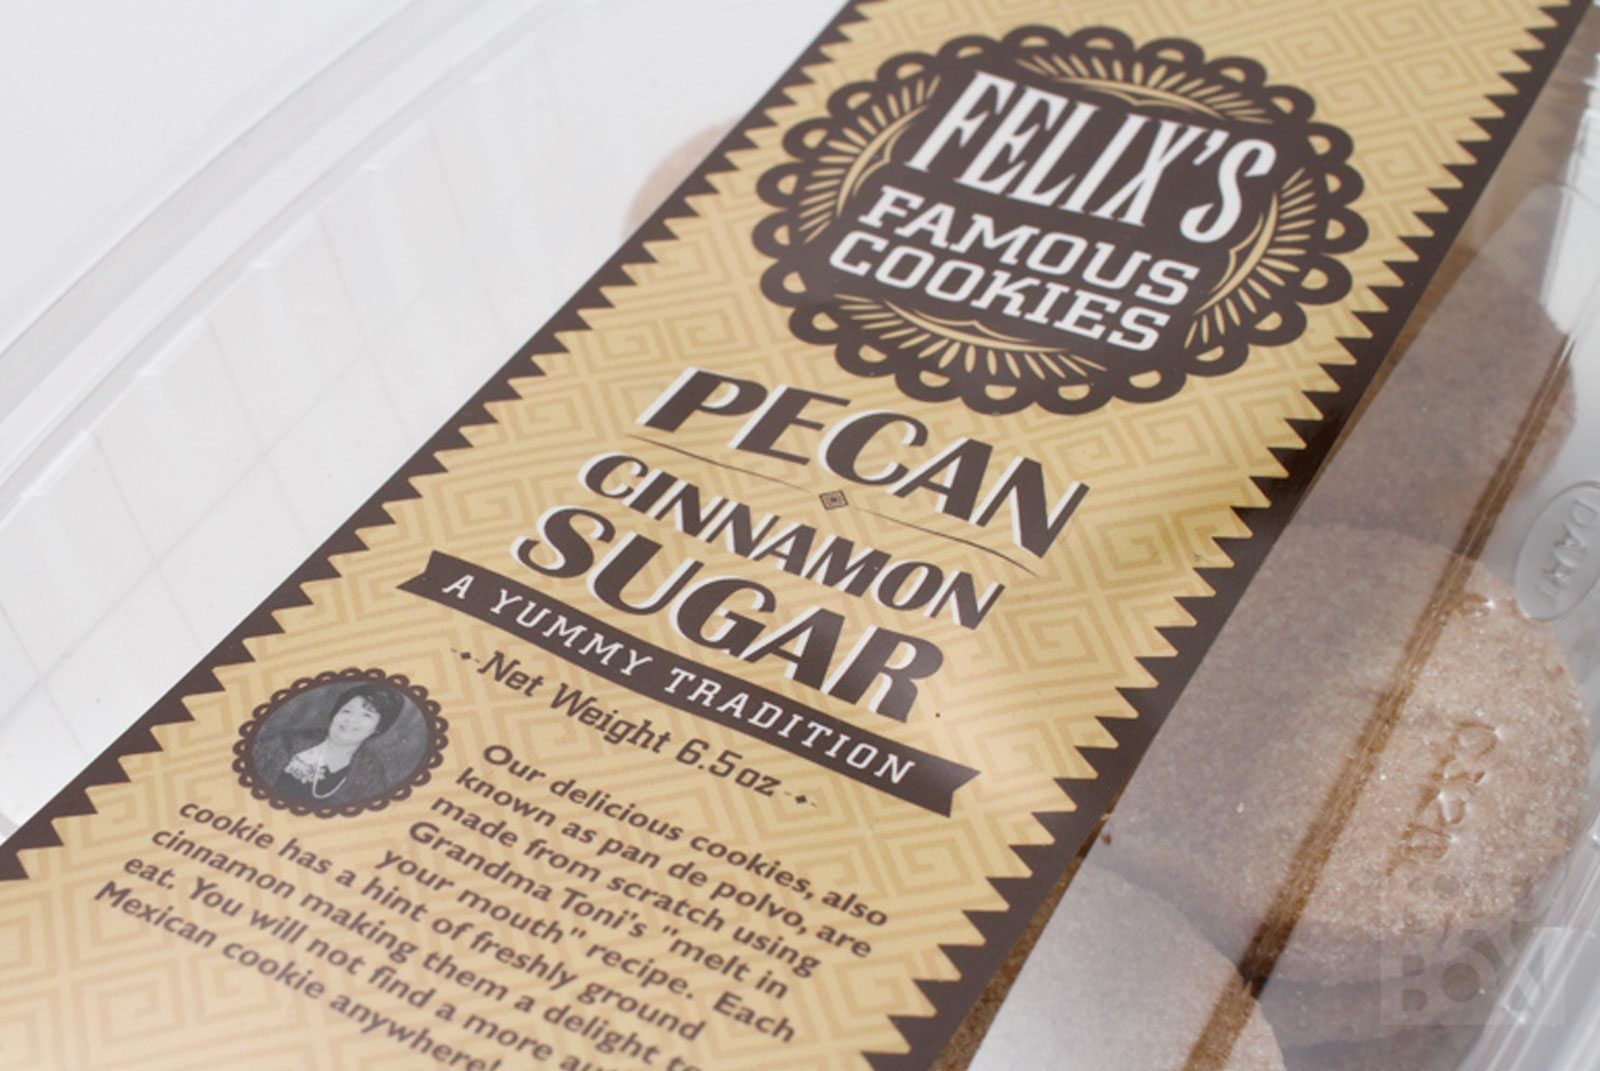 Felixs Famous Cookies Packaging